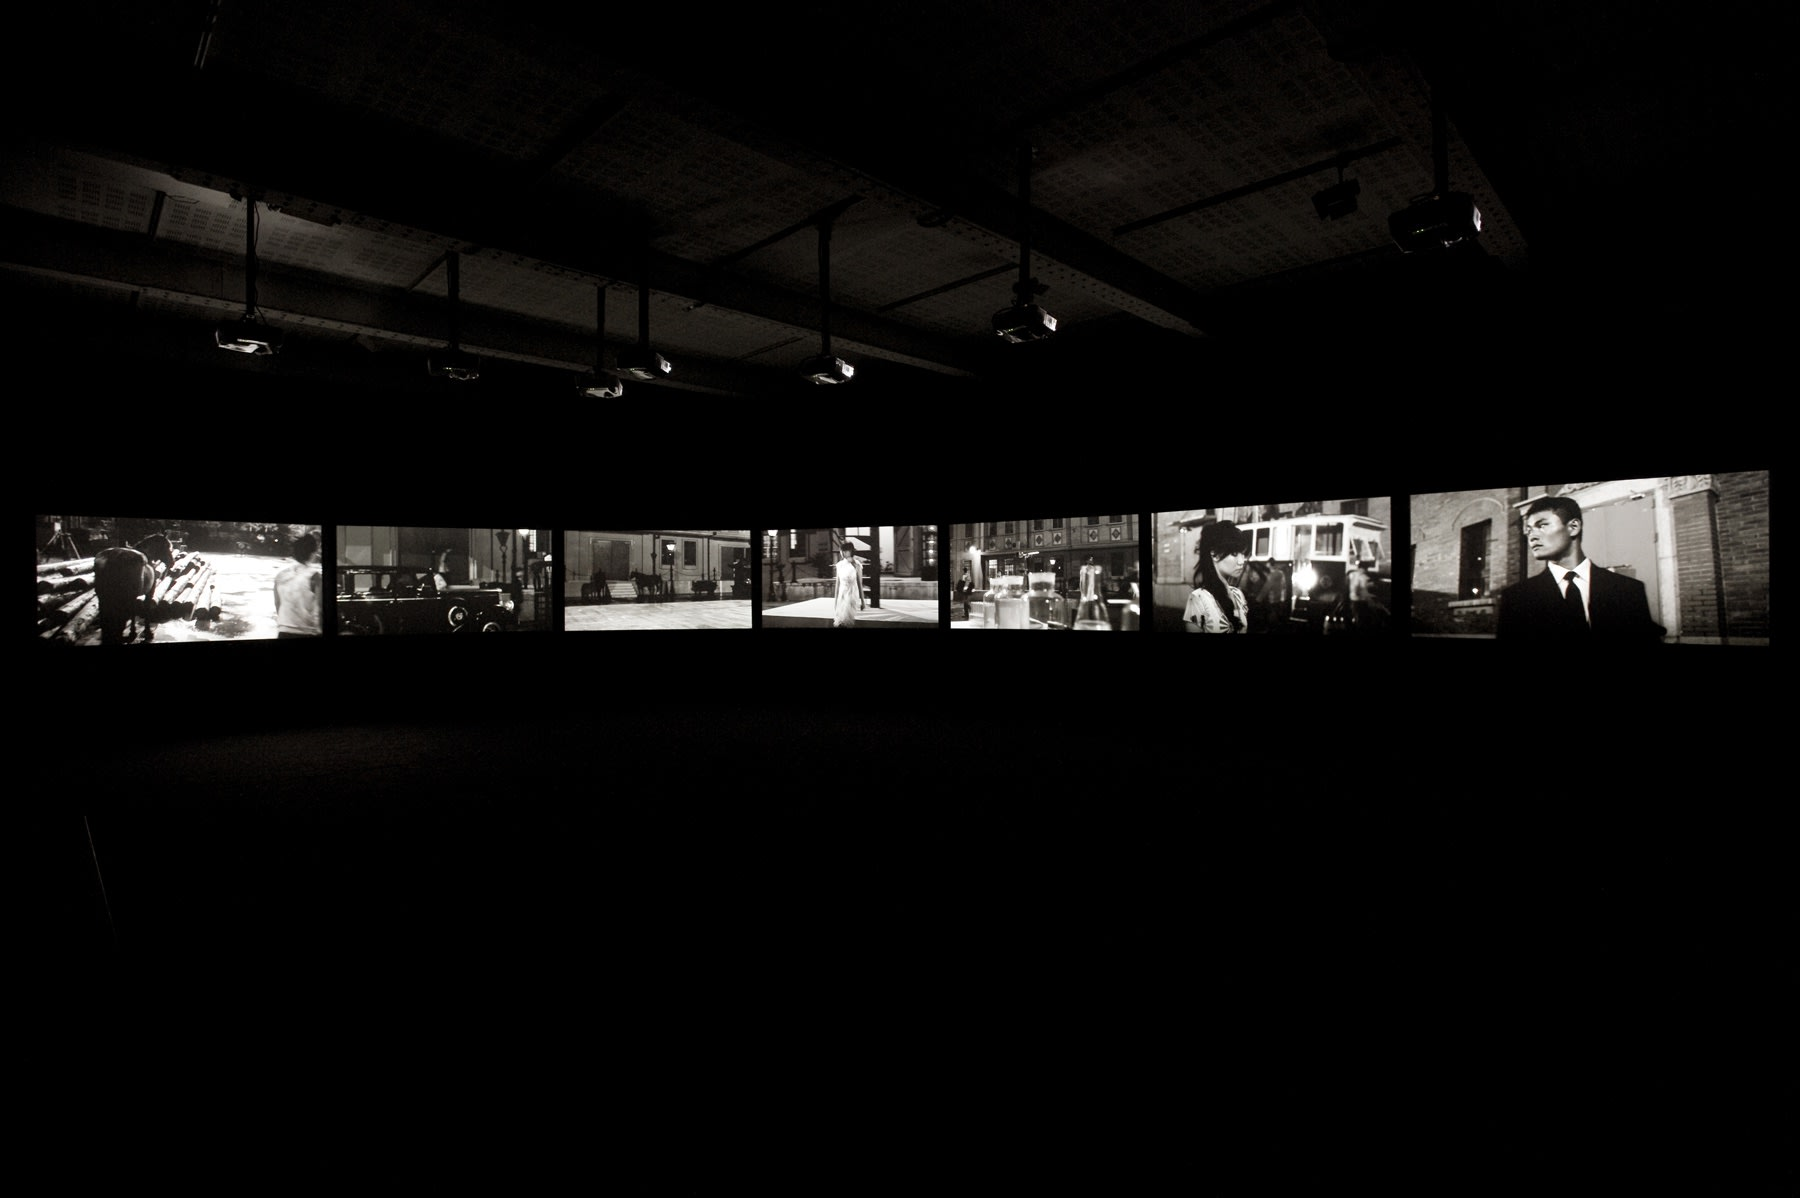 Seven projection screens arranged in a horizontal line in a large dark room. The black and white projections show city street scenes, a man and a woman.